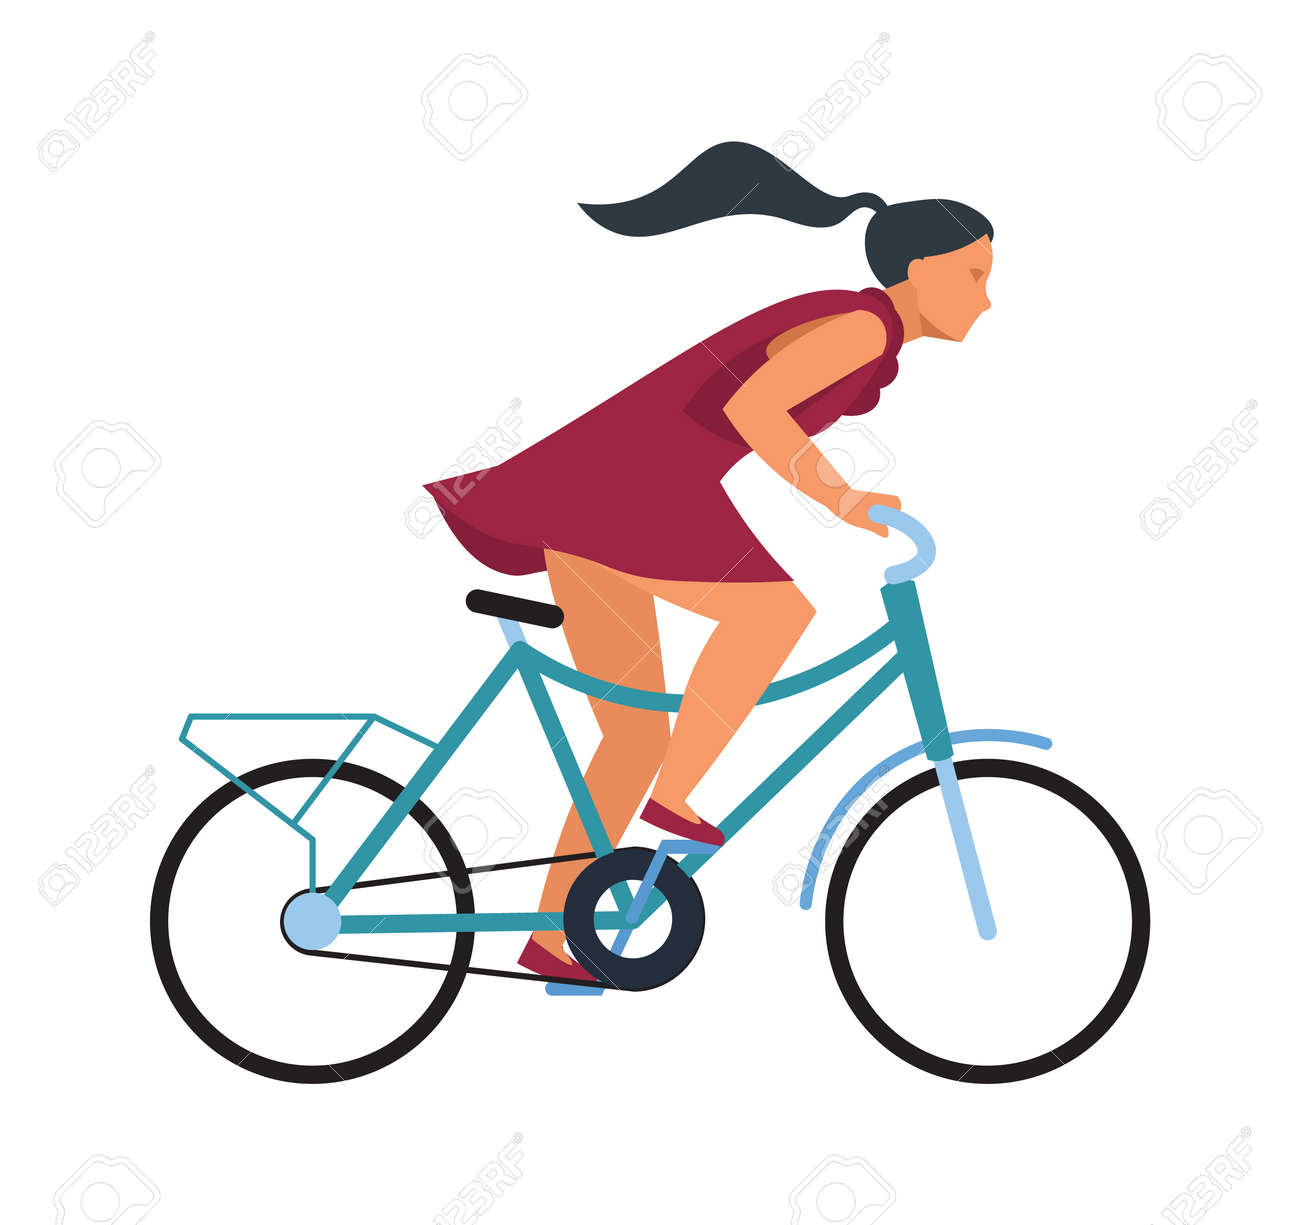 Girl on bike. Cartoon woman riding bicycle fast. Profile view of young female on wheel transport. Isolated hurrying cyclist. Outdoor workout or sport competition. Vector illustration - 166972857